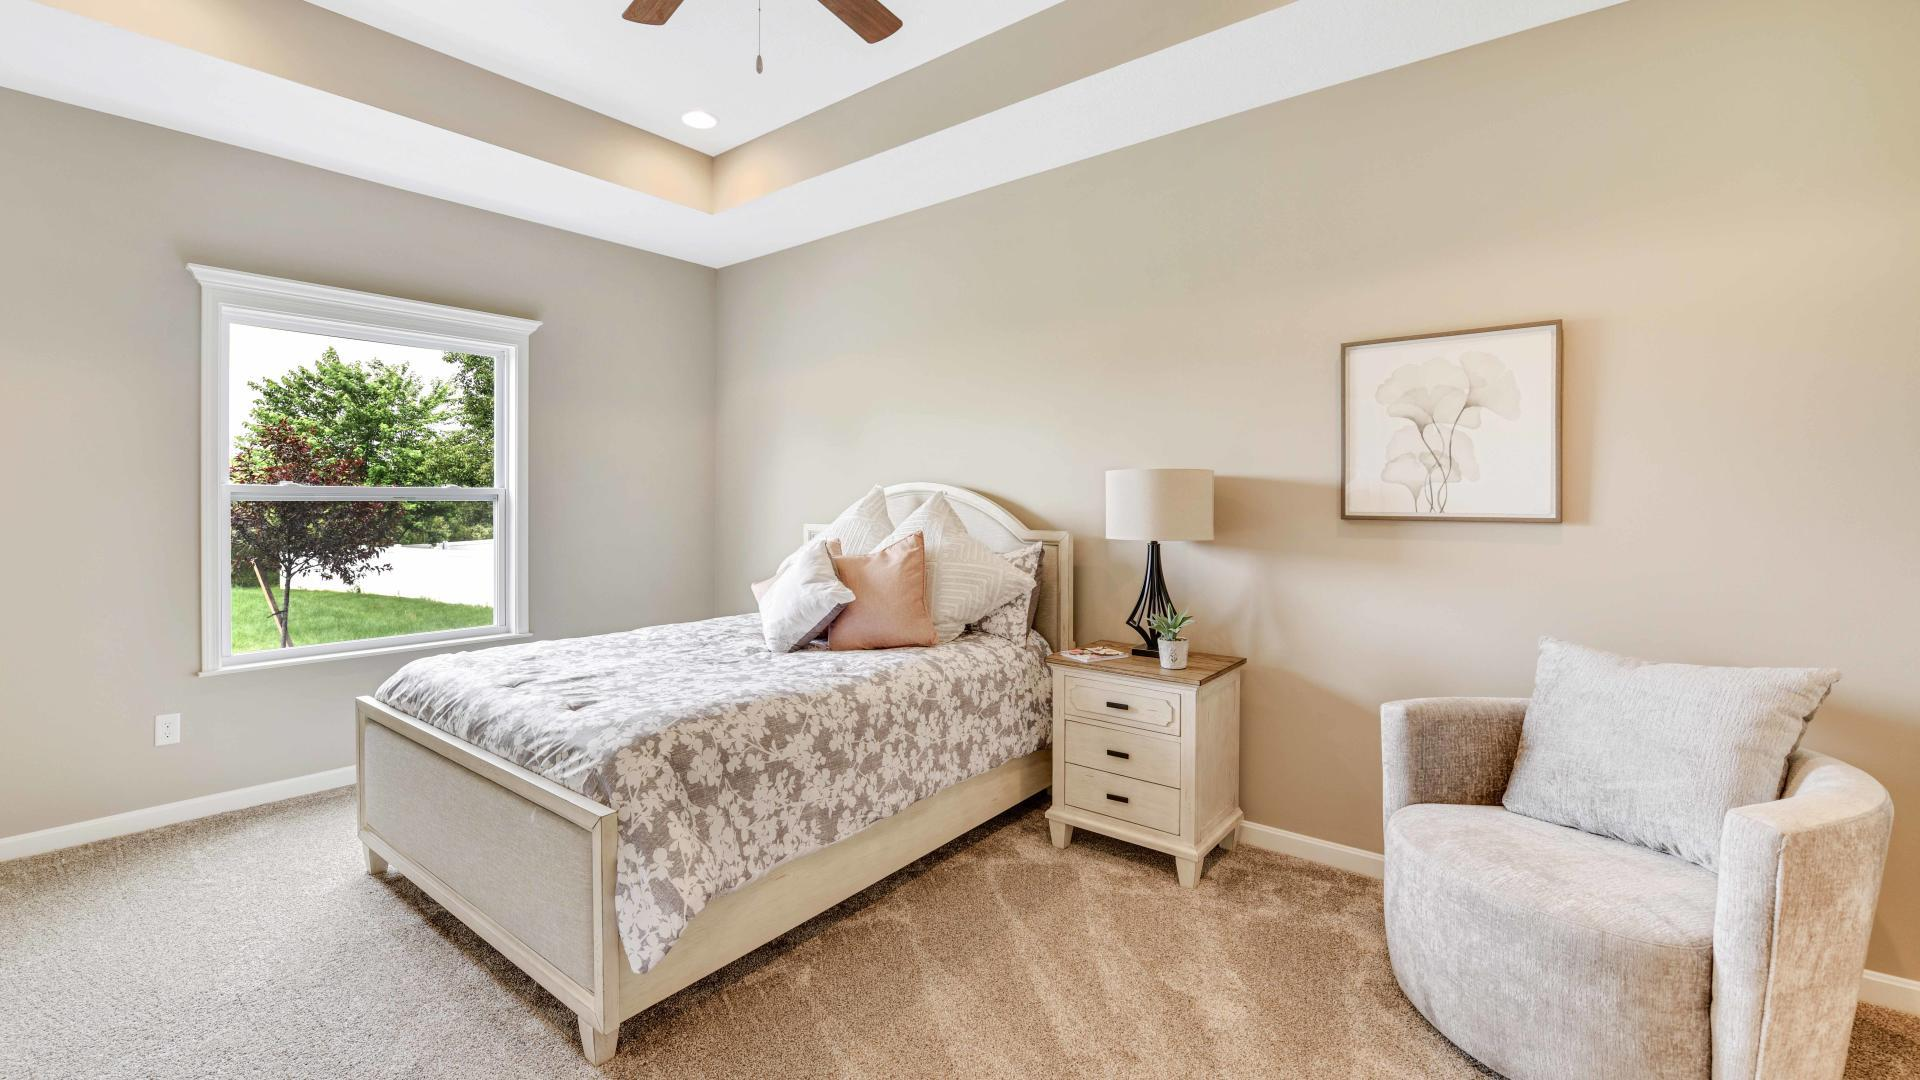 Bedroom featured in the Avalon By Maronda Homes in Columbus, OH